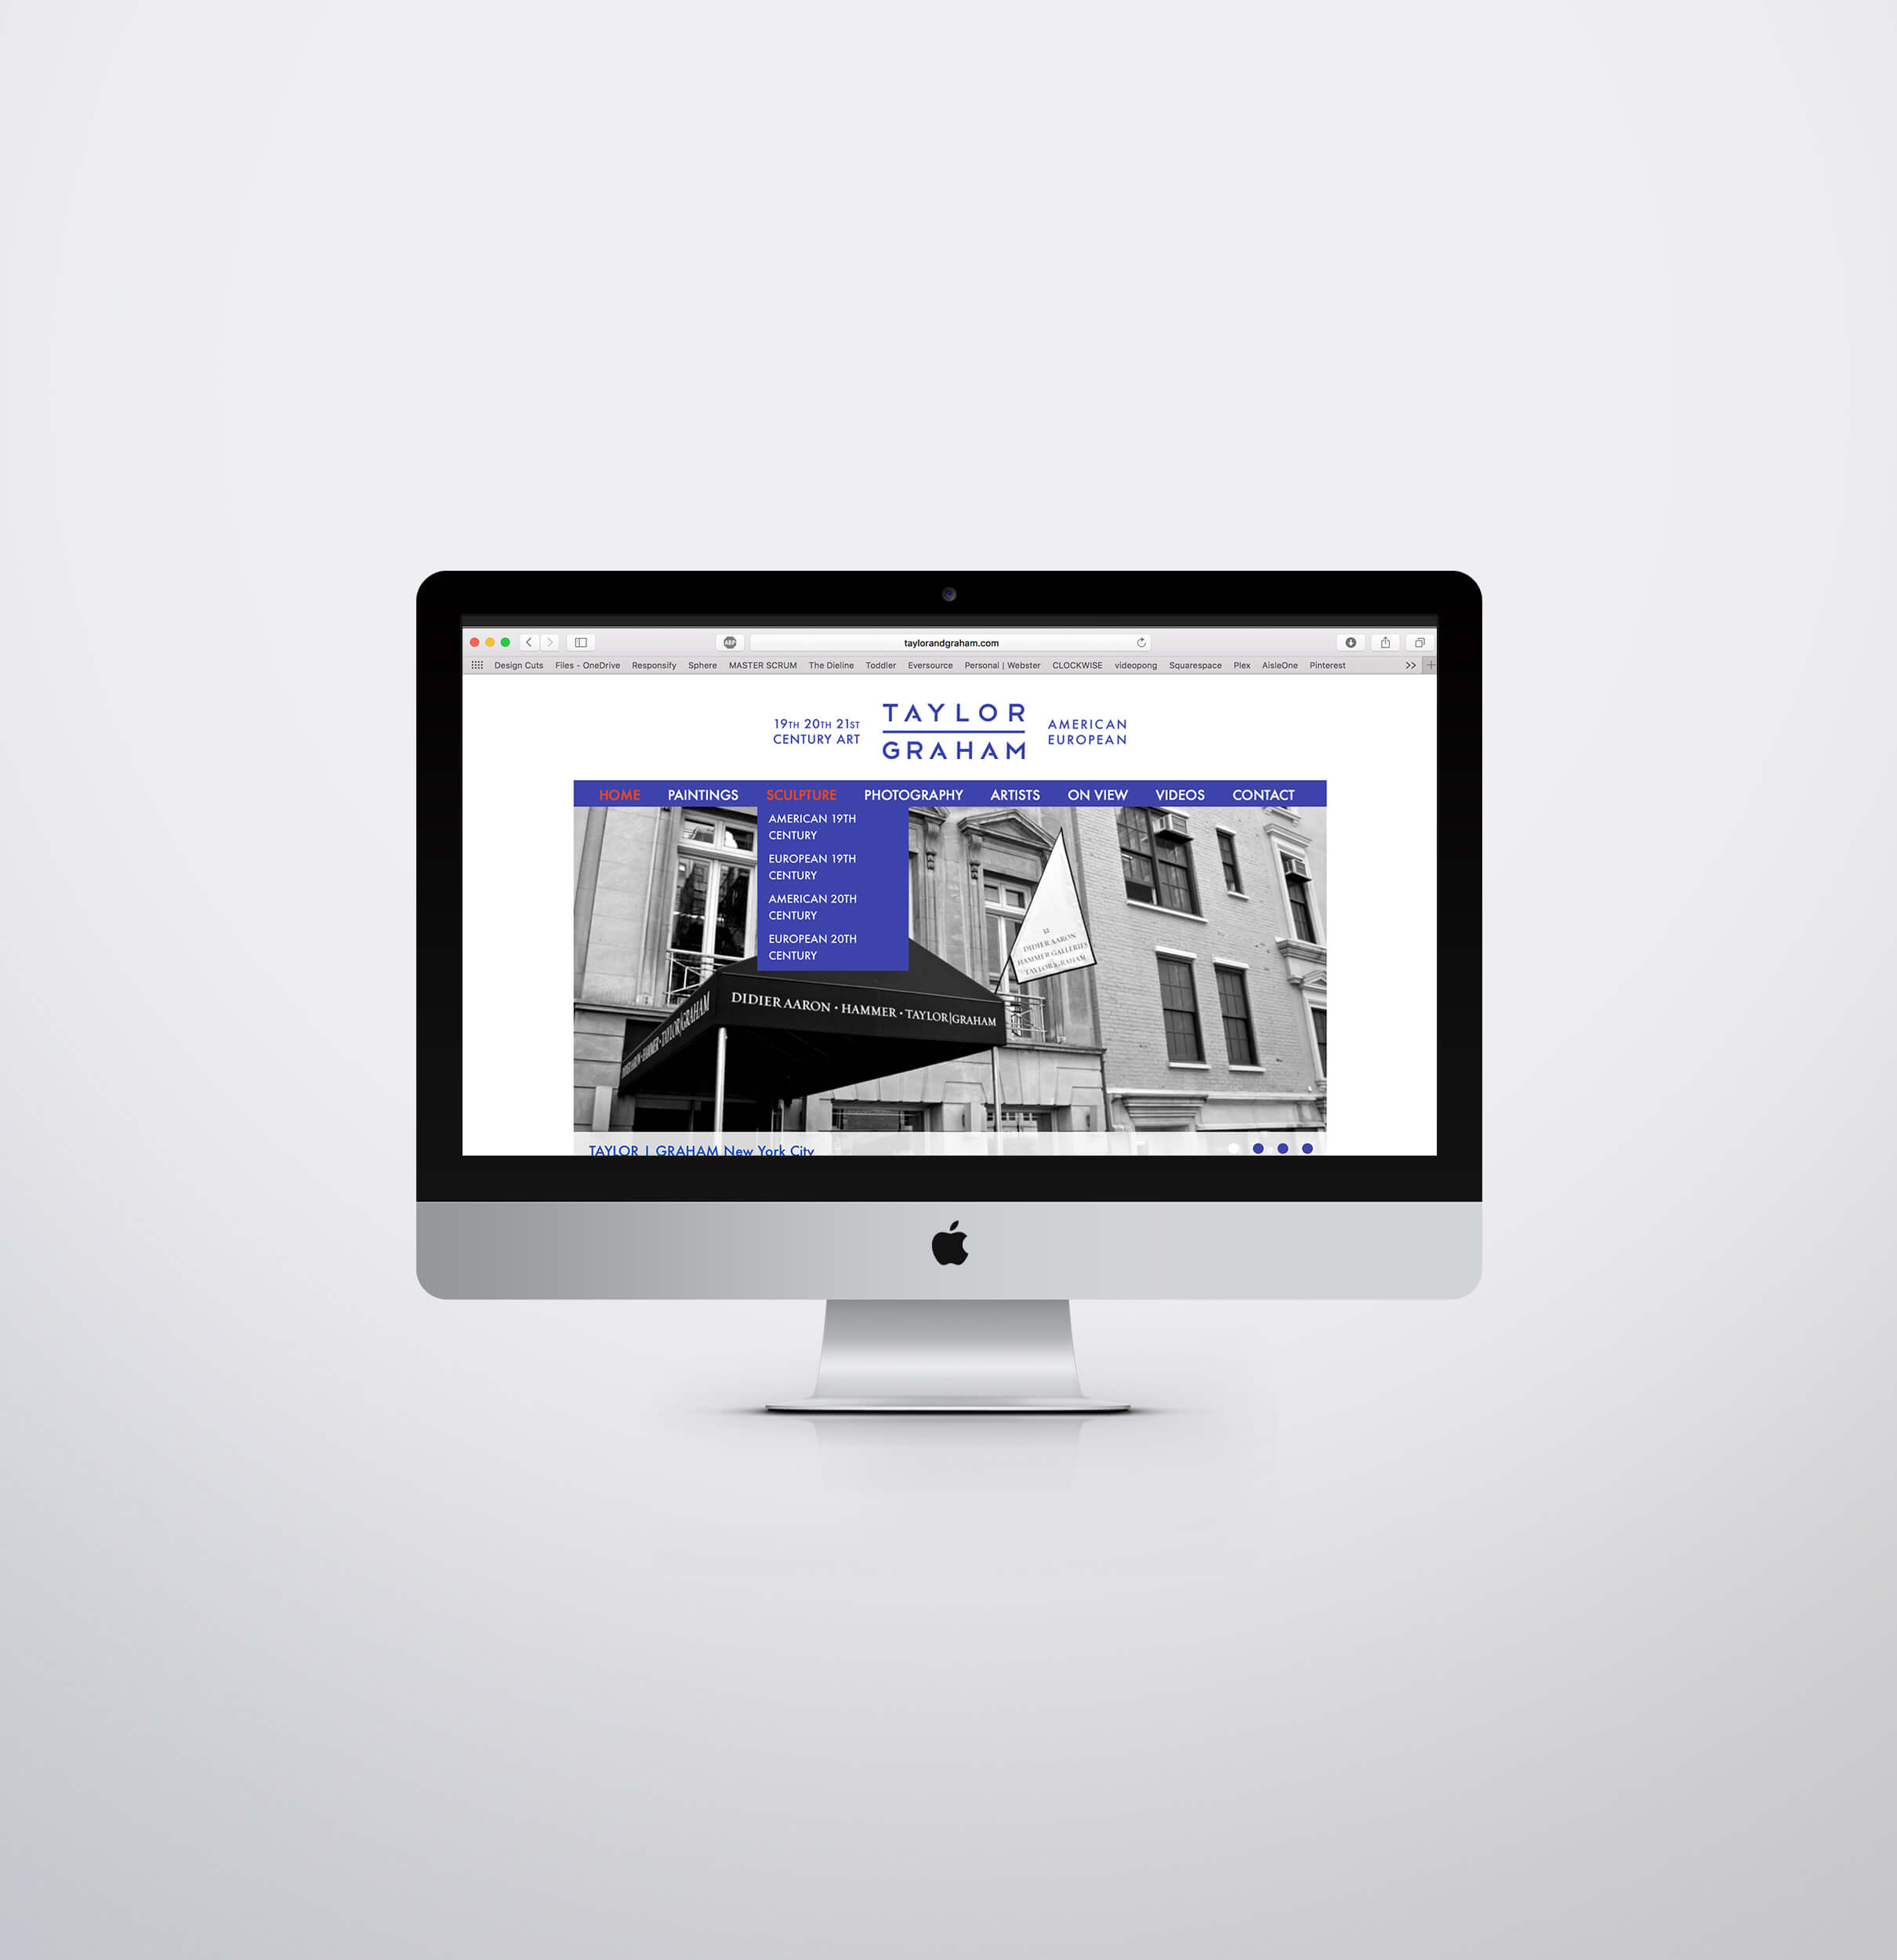 websquare